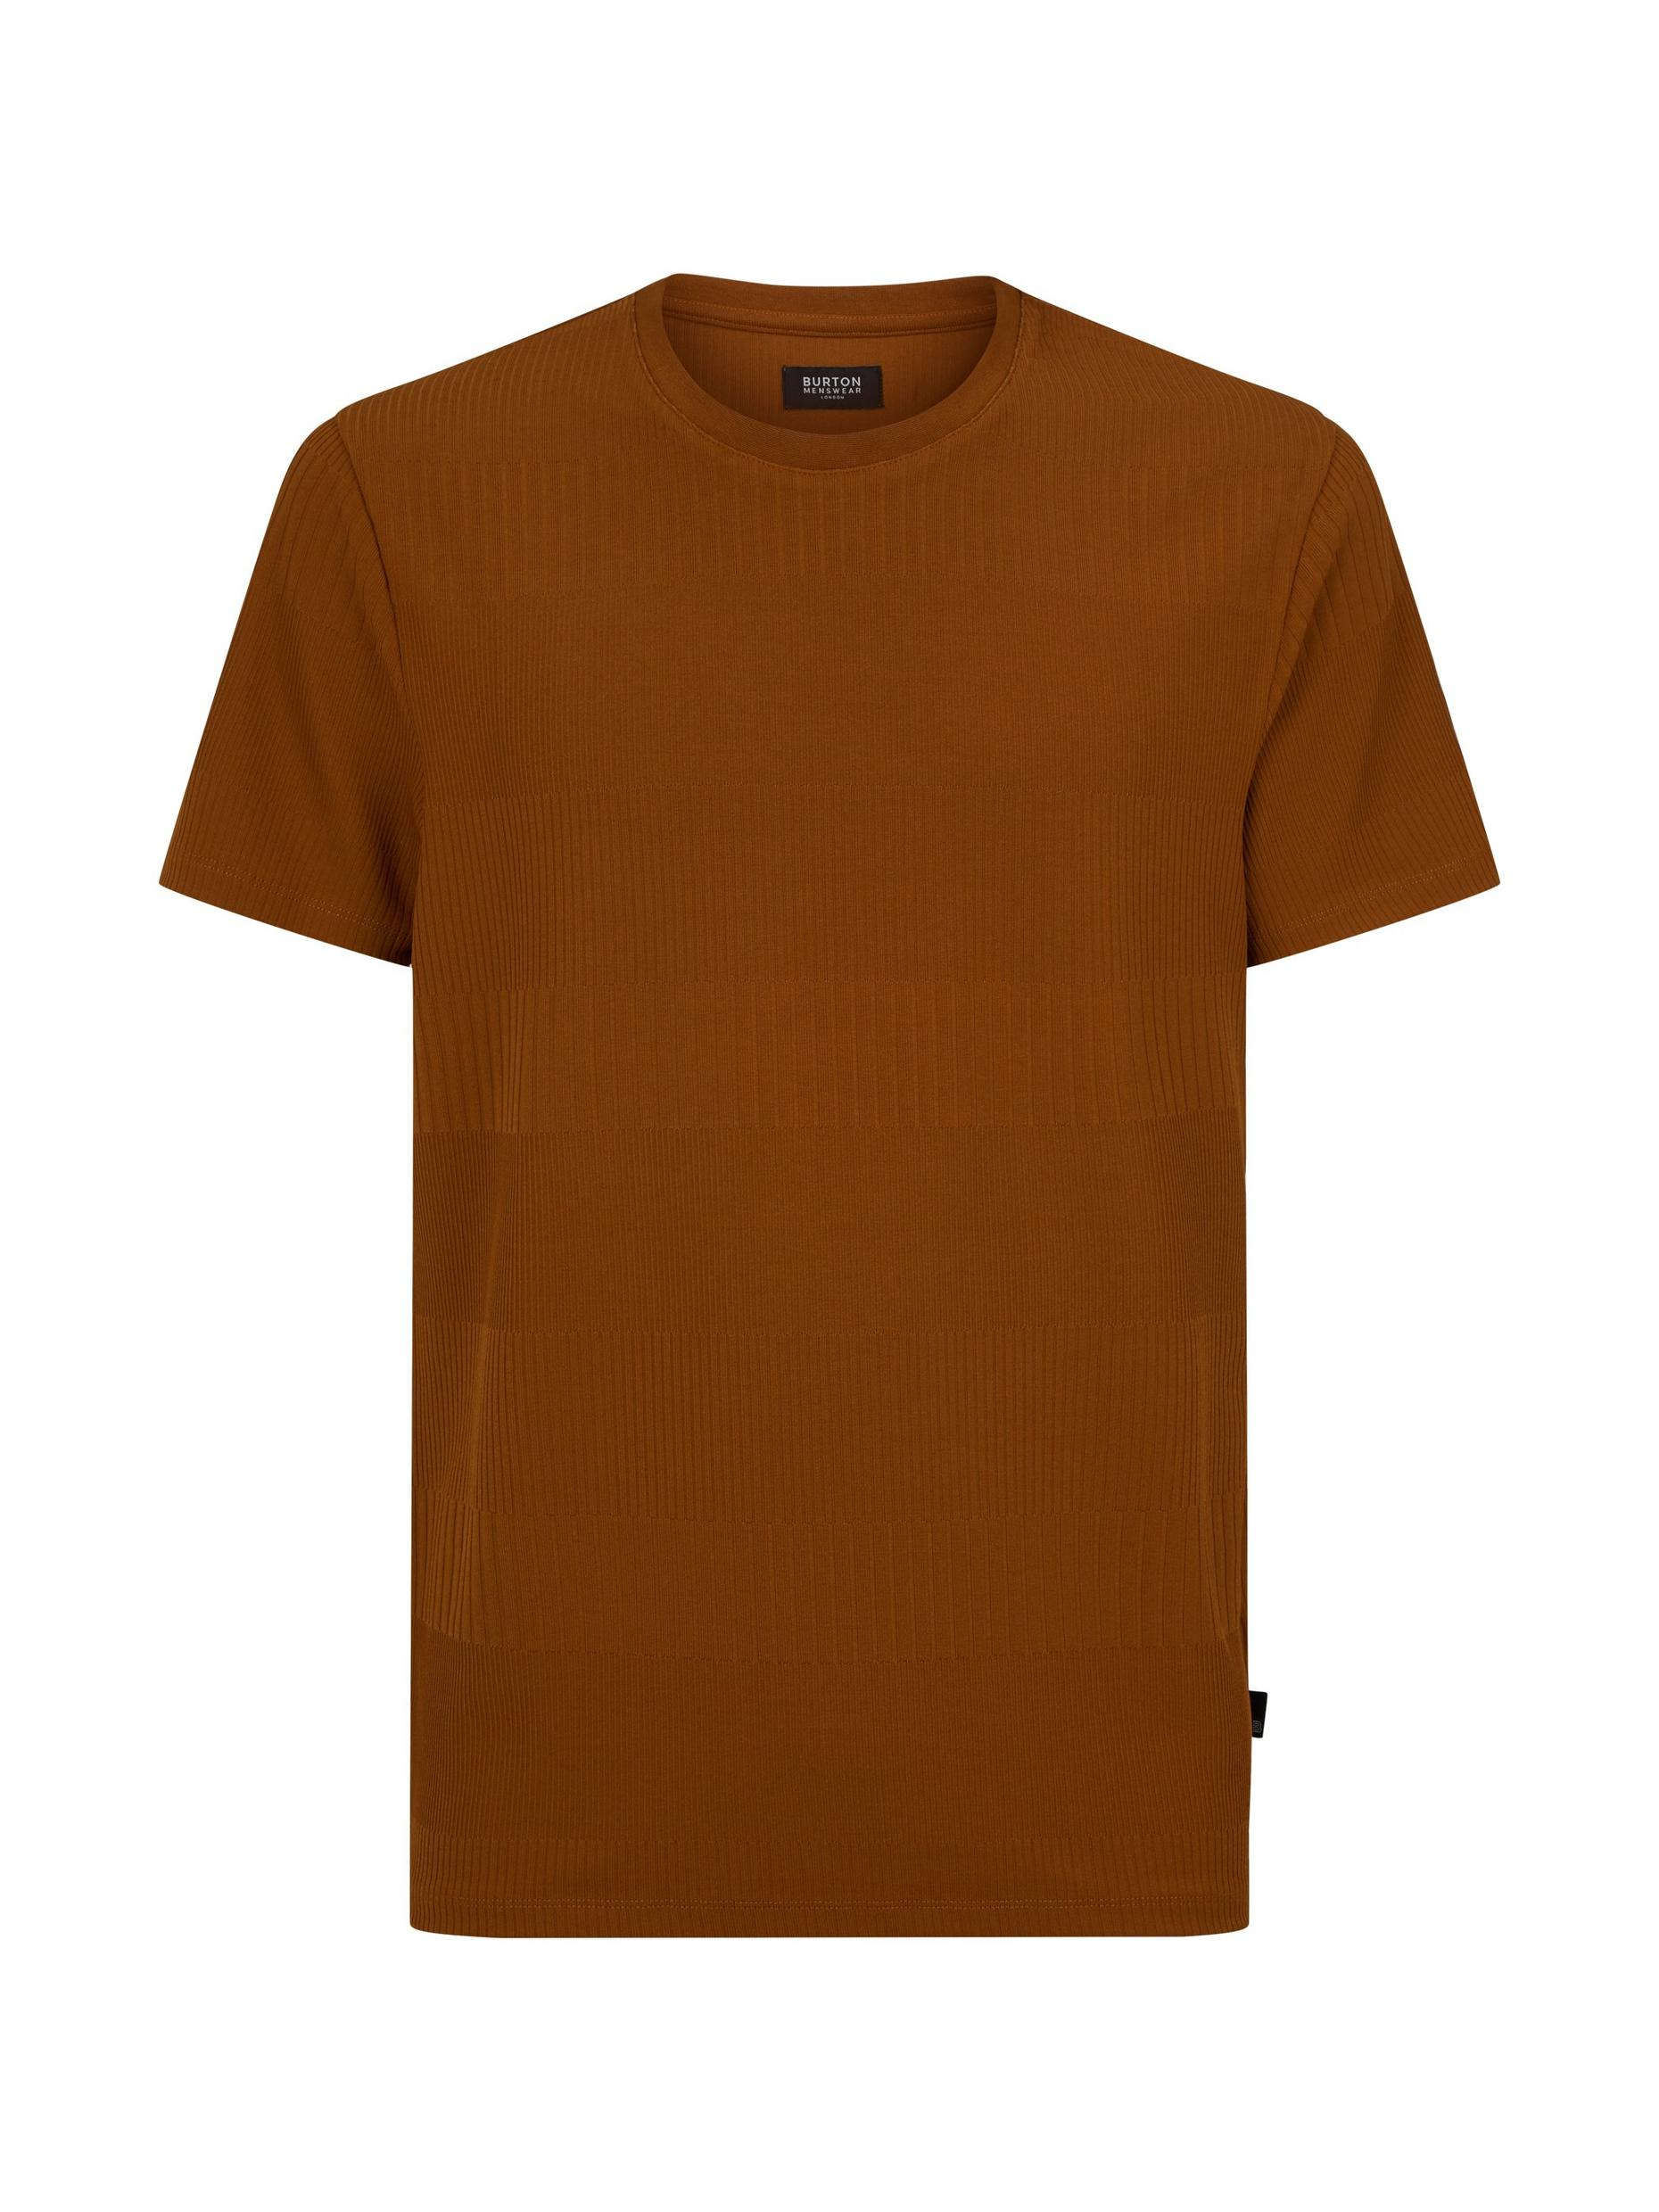 Tobacco Irregular Rib T-Shirt